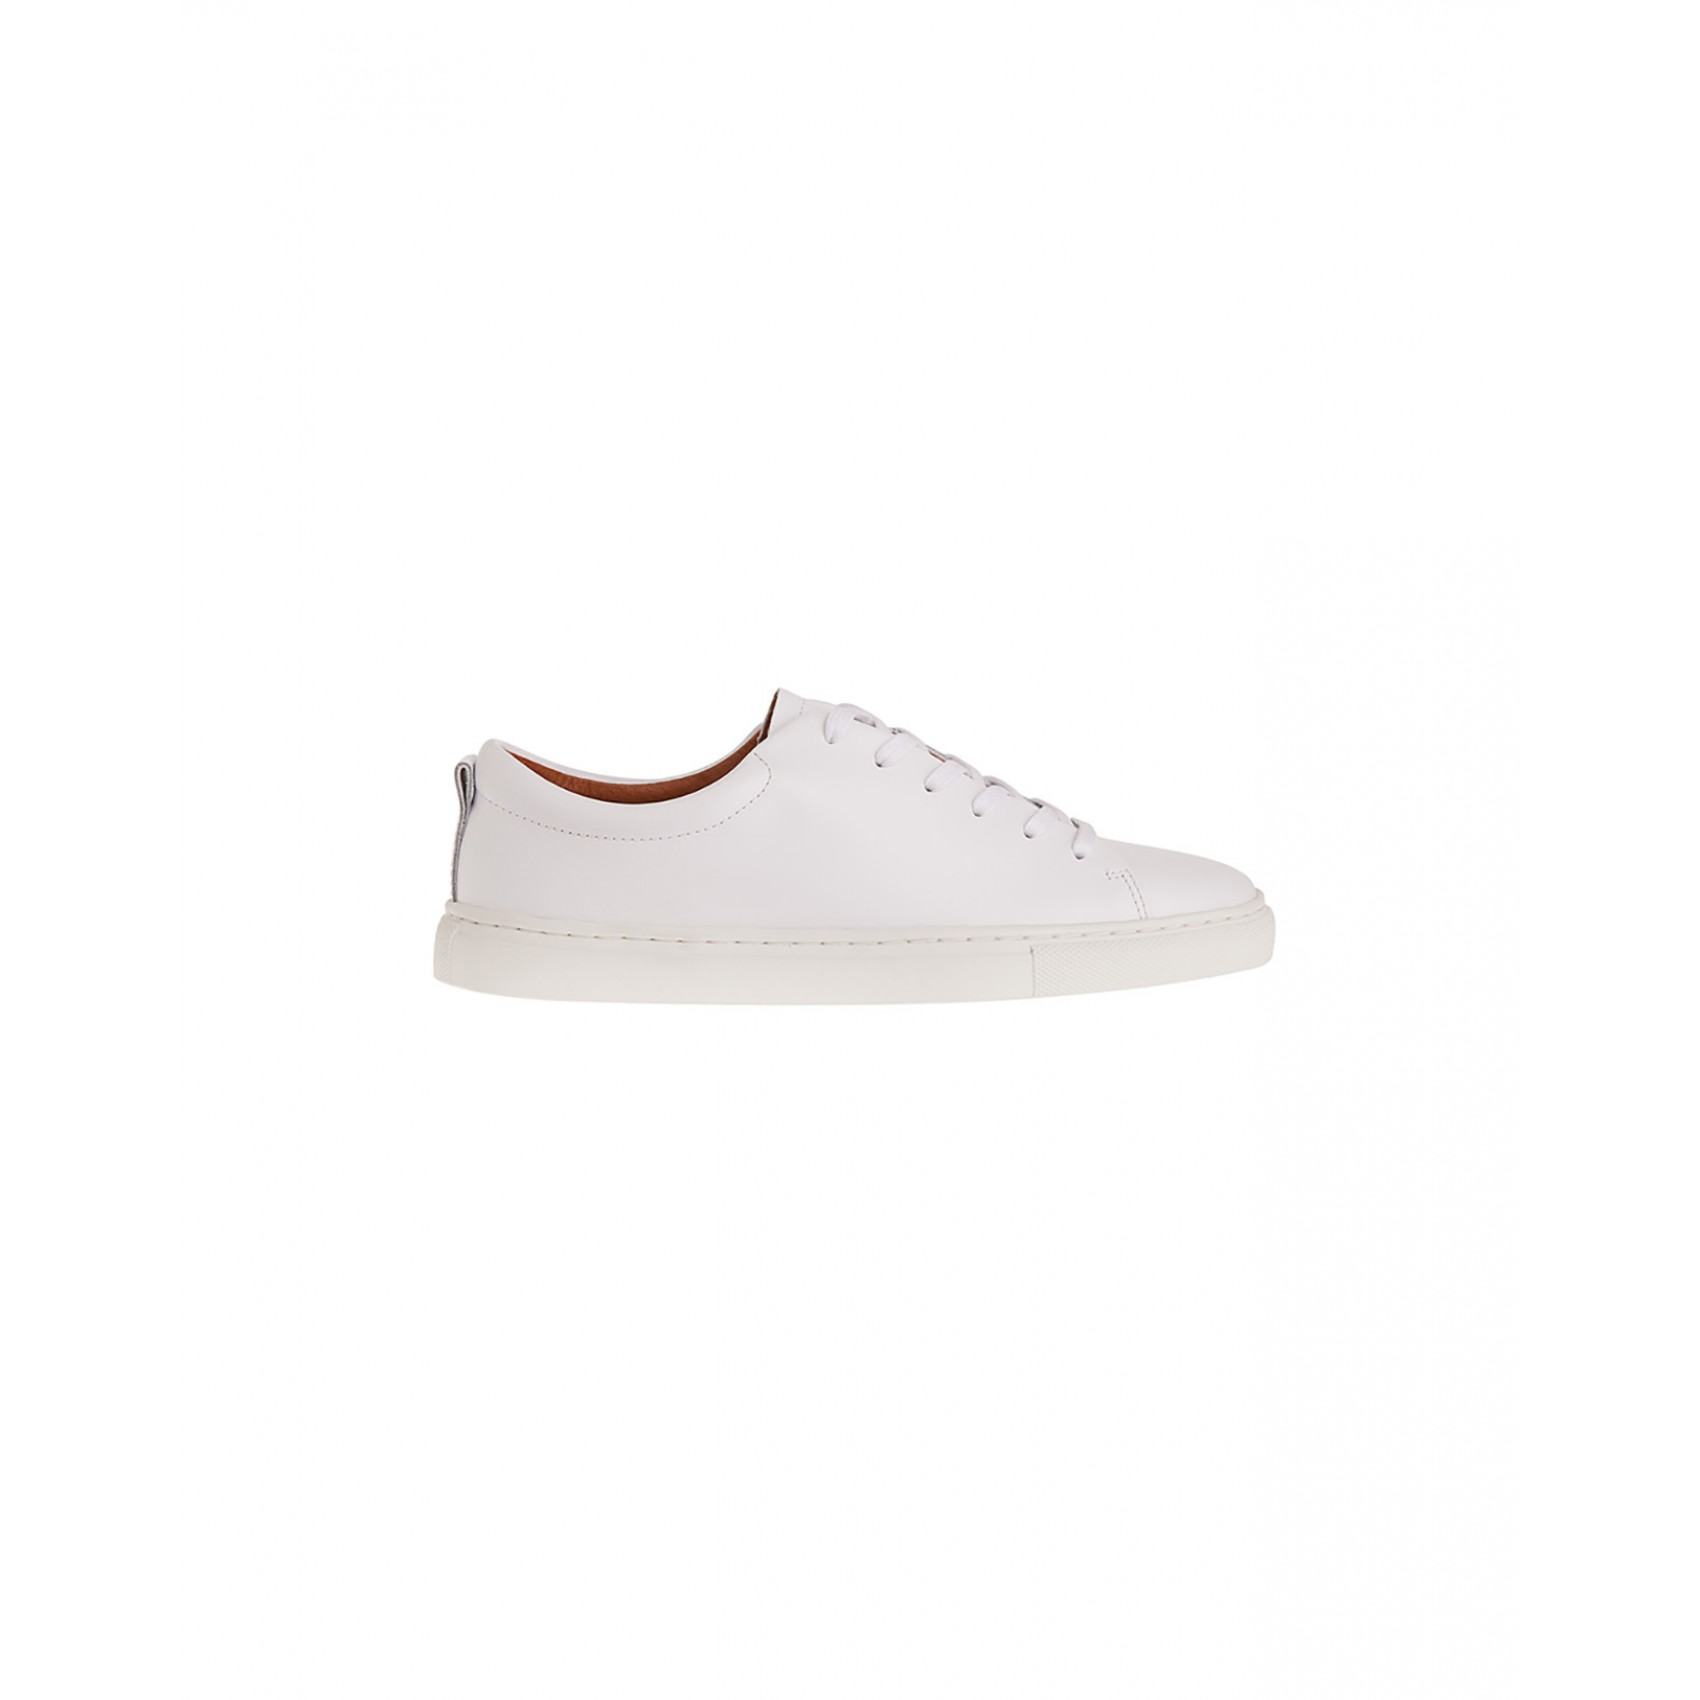 Sandro Athlete LOW-TOP SNEAKERS at Sandro US